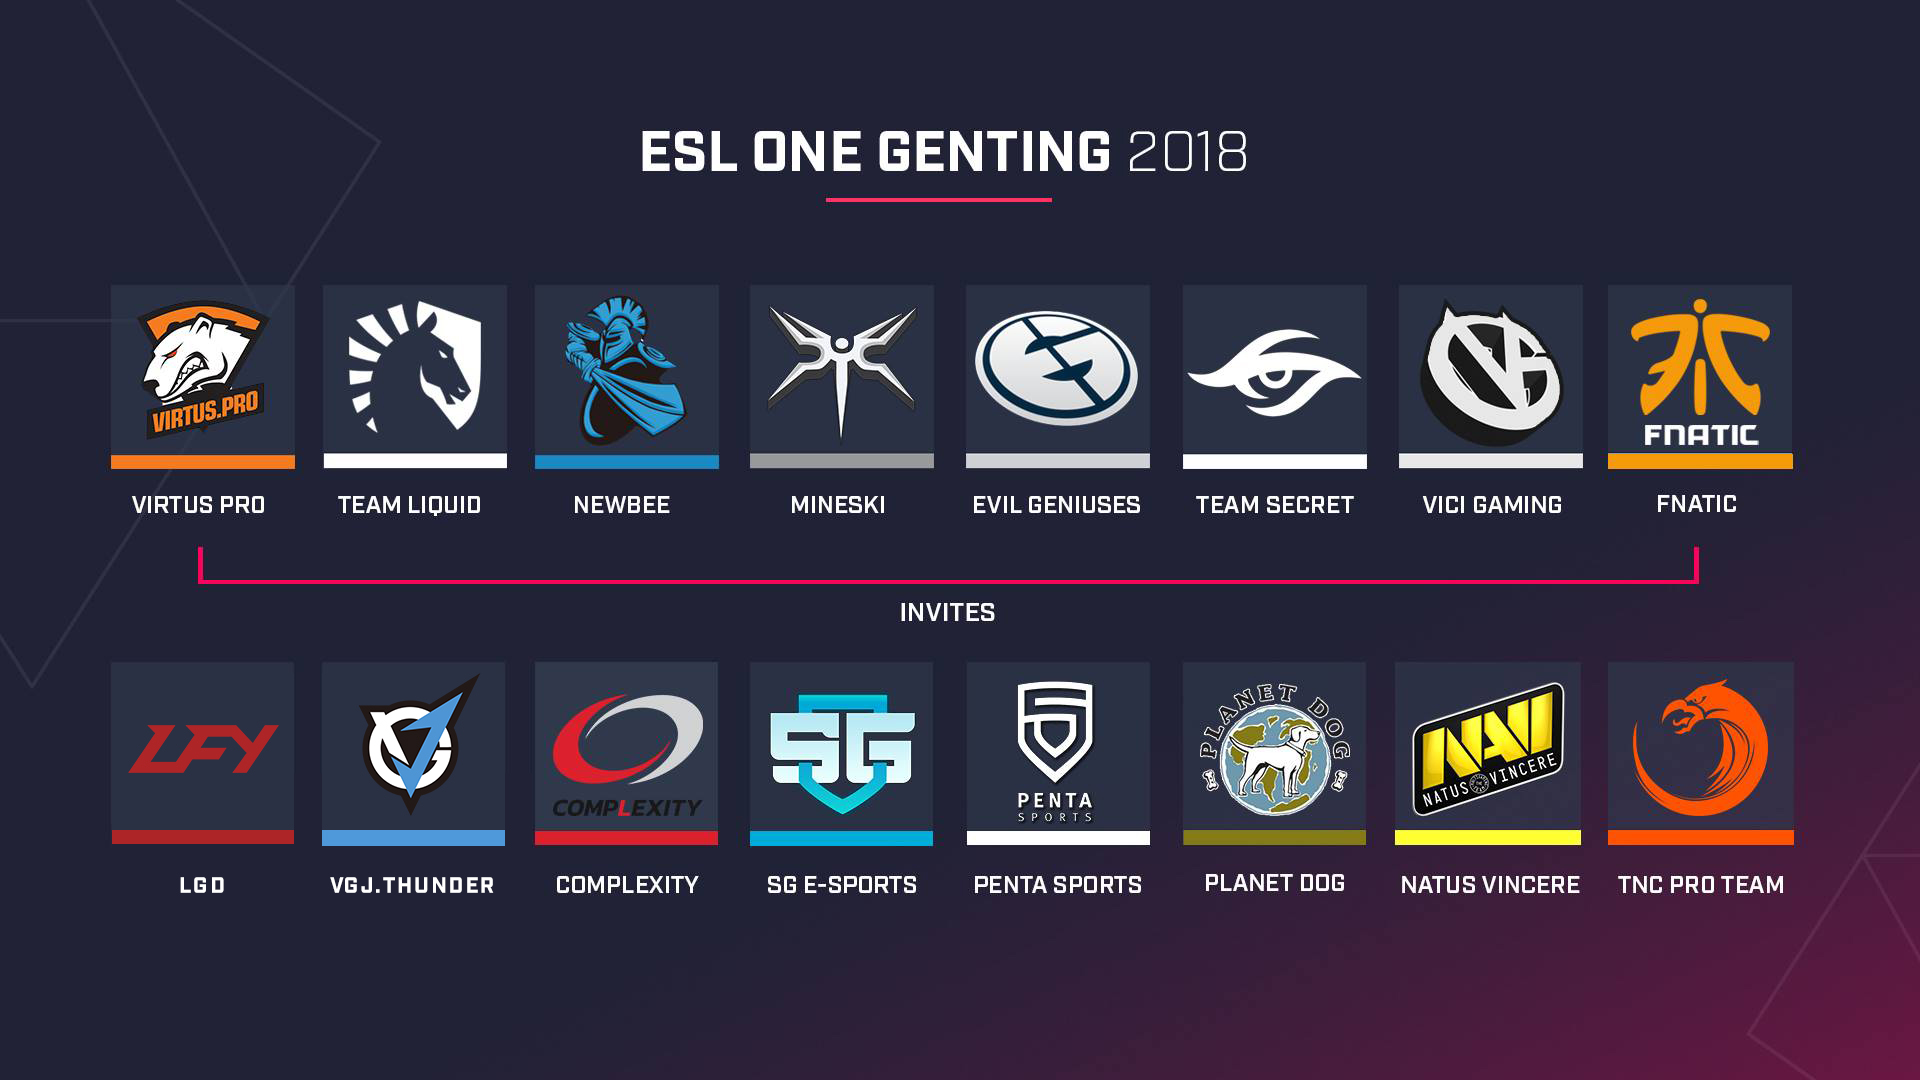 ESL One Genting 2018 The RM15 Million Prize Pool Amp More To Expect At The Dota 2 Minor